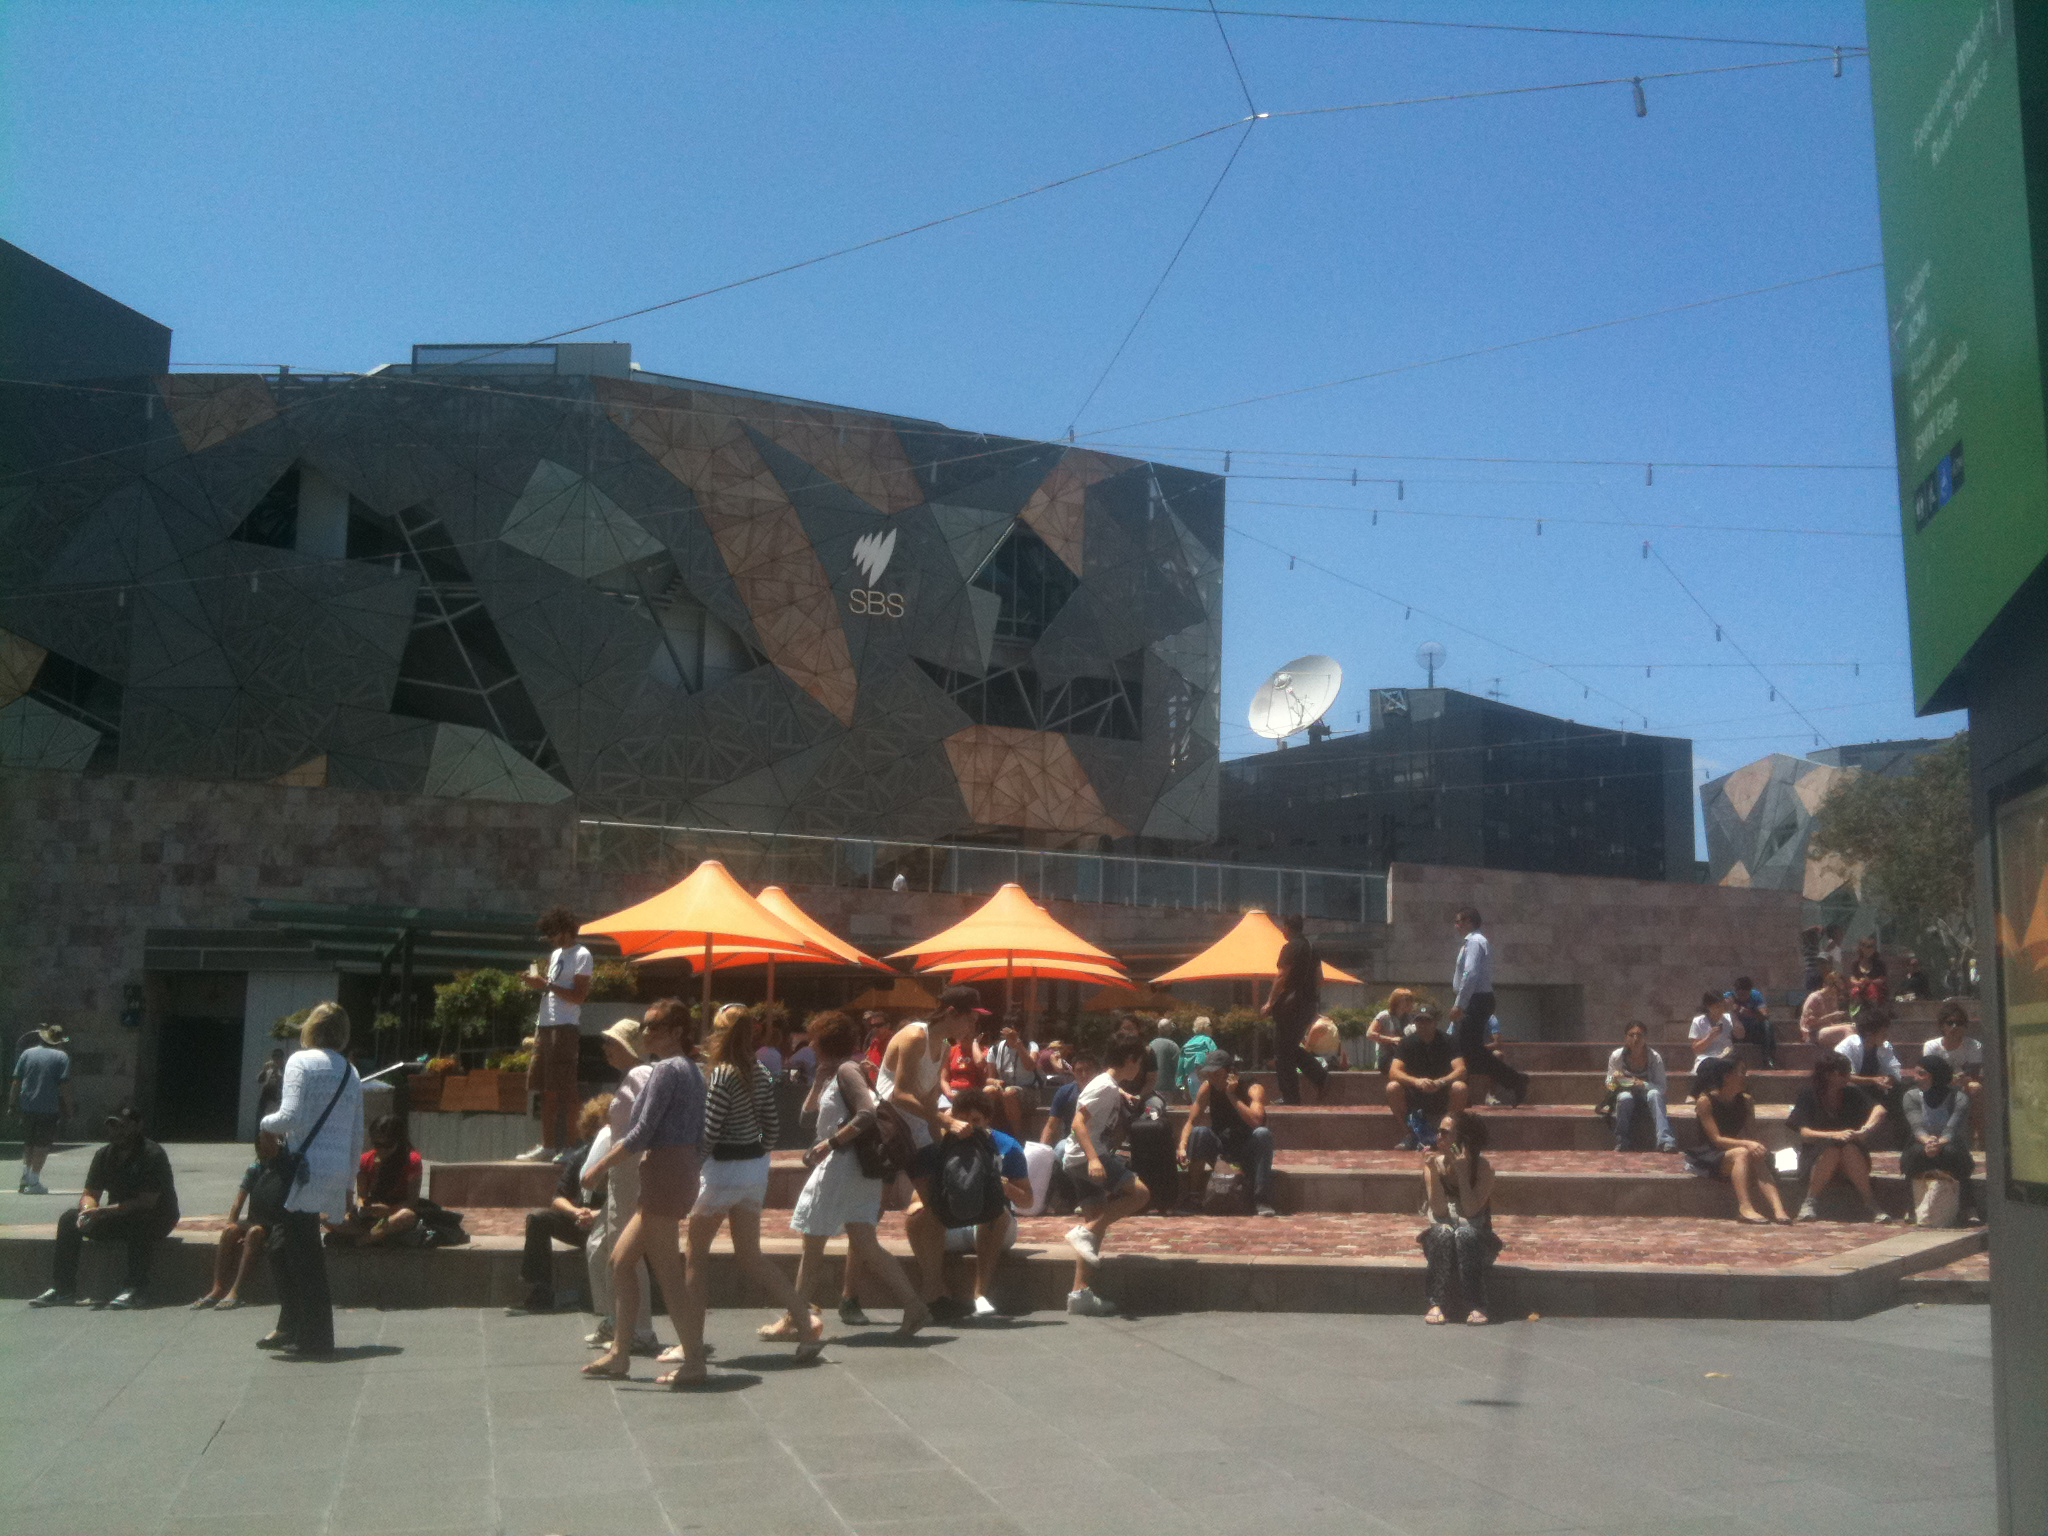 The Federation Square in Melbourne, Australia uses fake grass in places. | AMY CHAVEZ